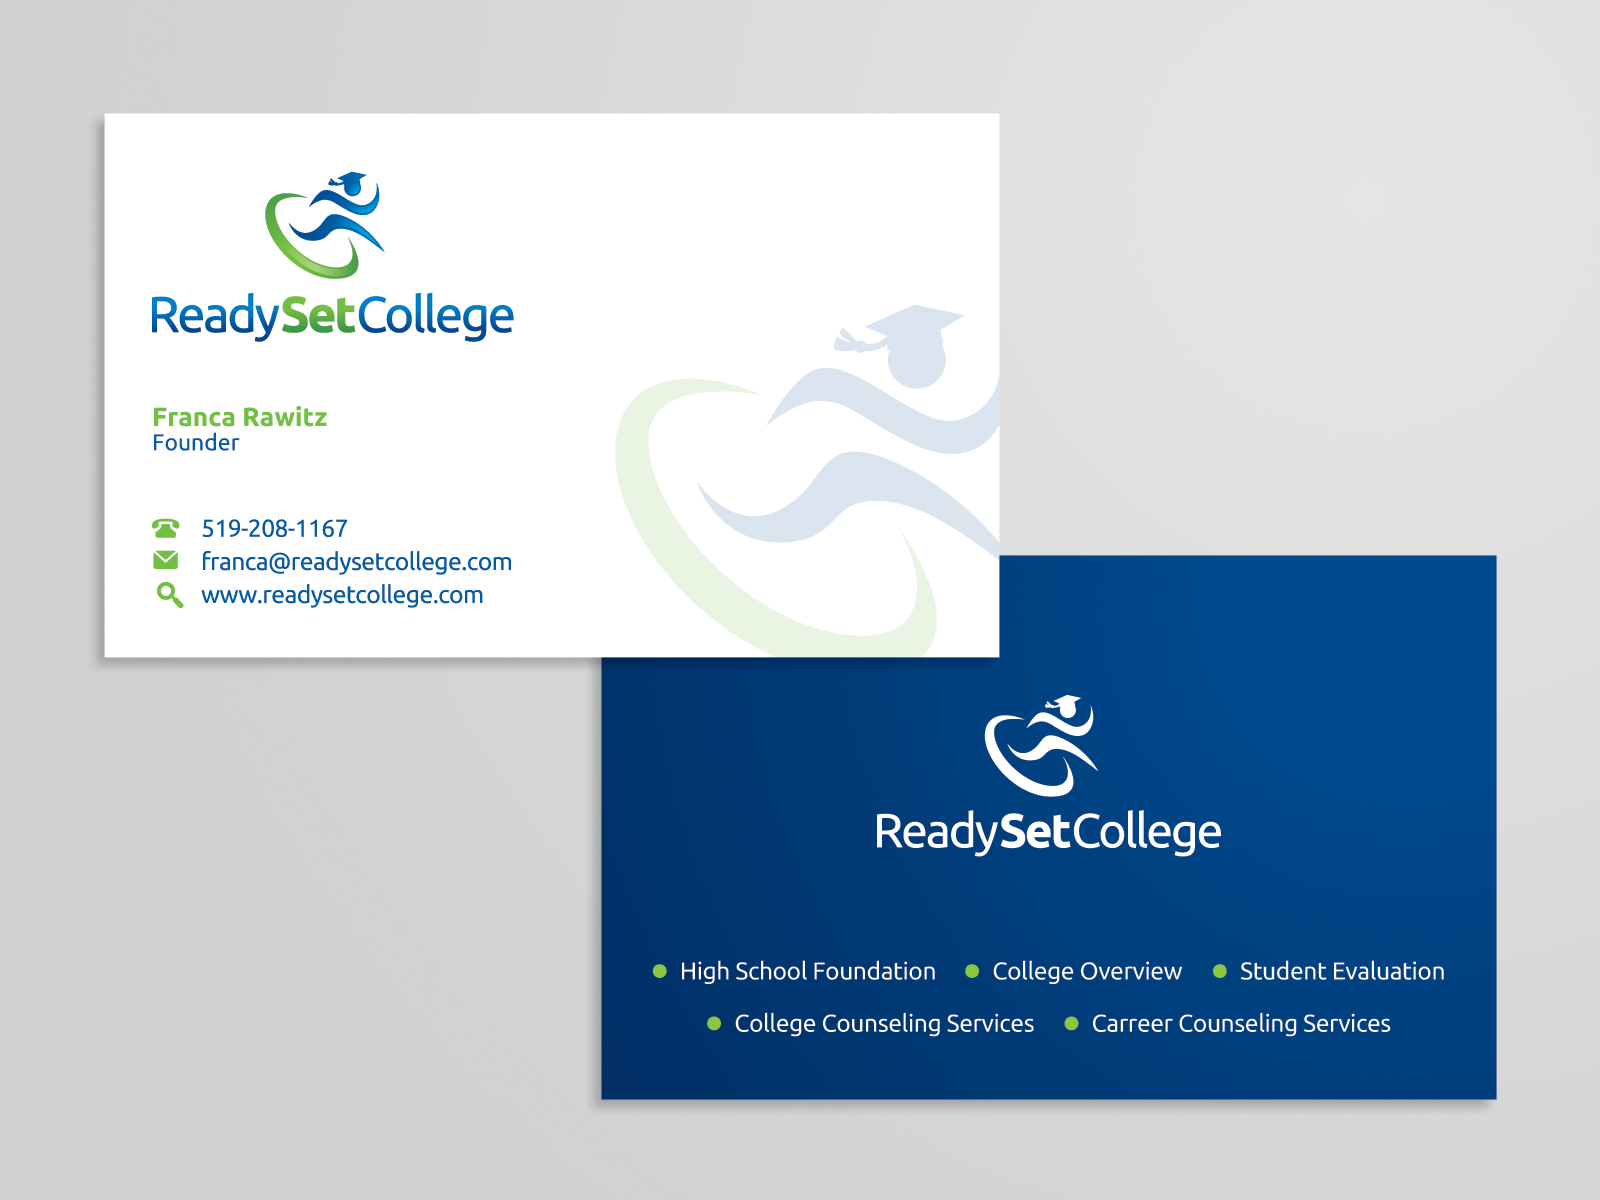 Design a logo that connotes support and help for parents